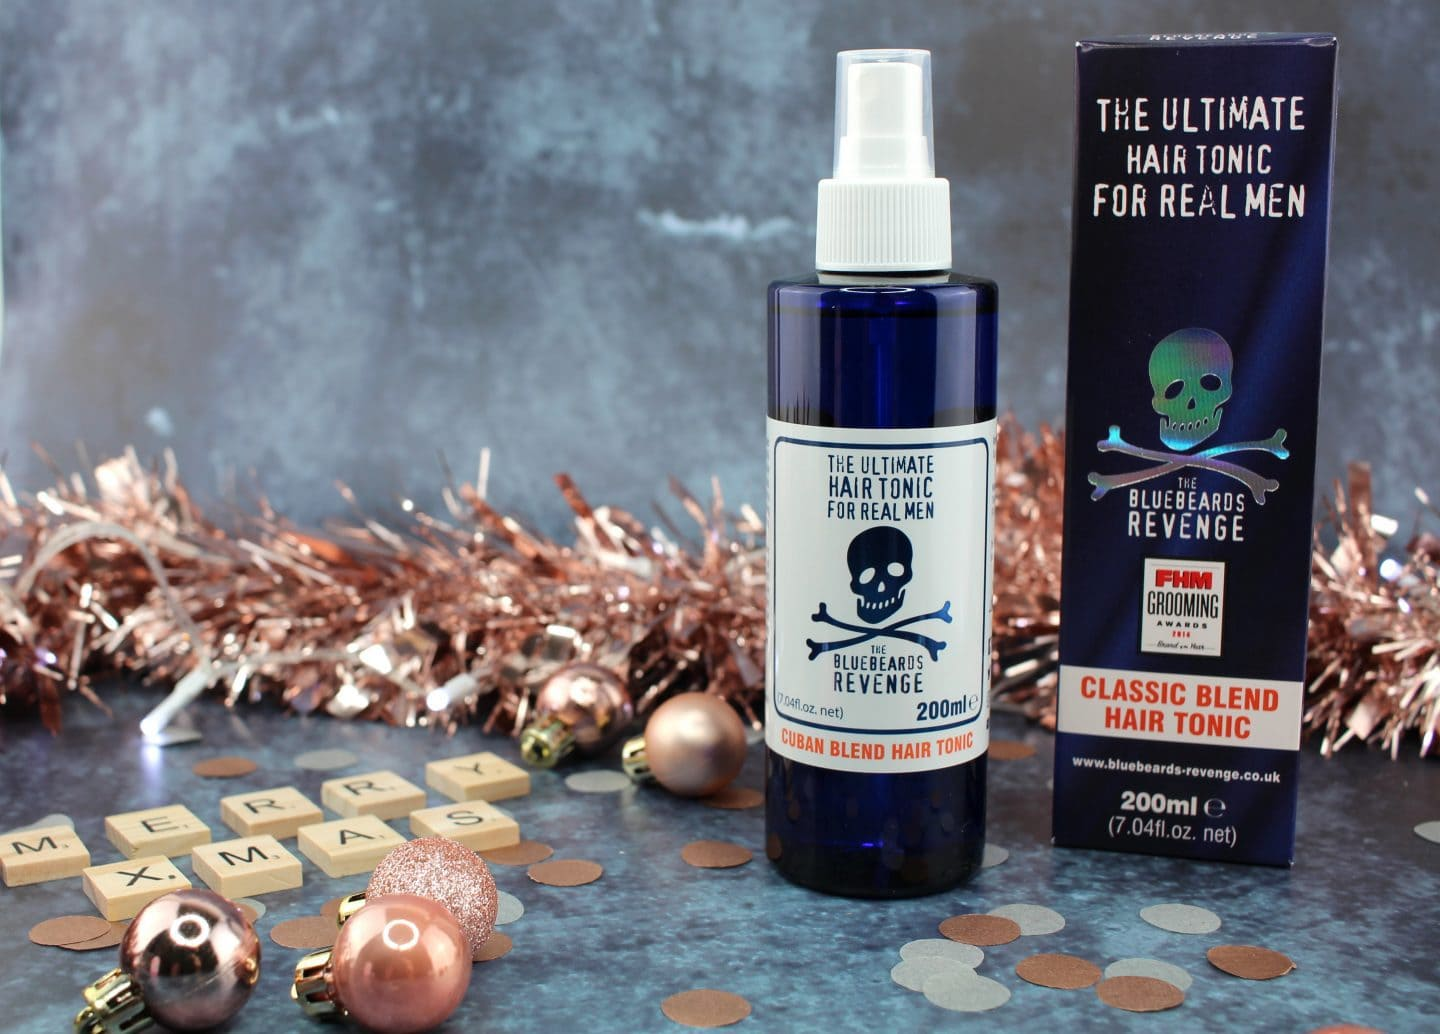 Bluebeards Revenge Hair Tonic